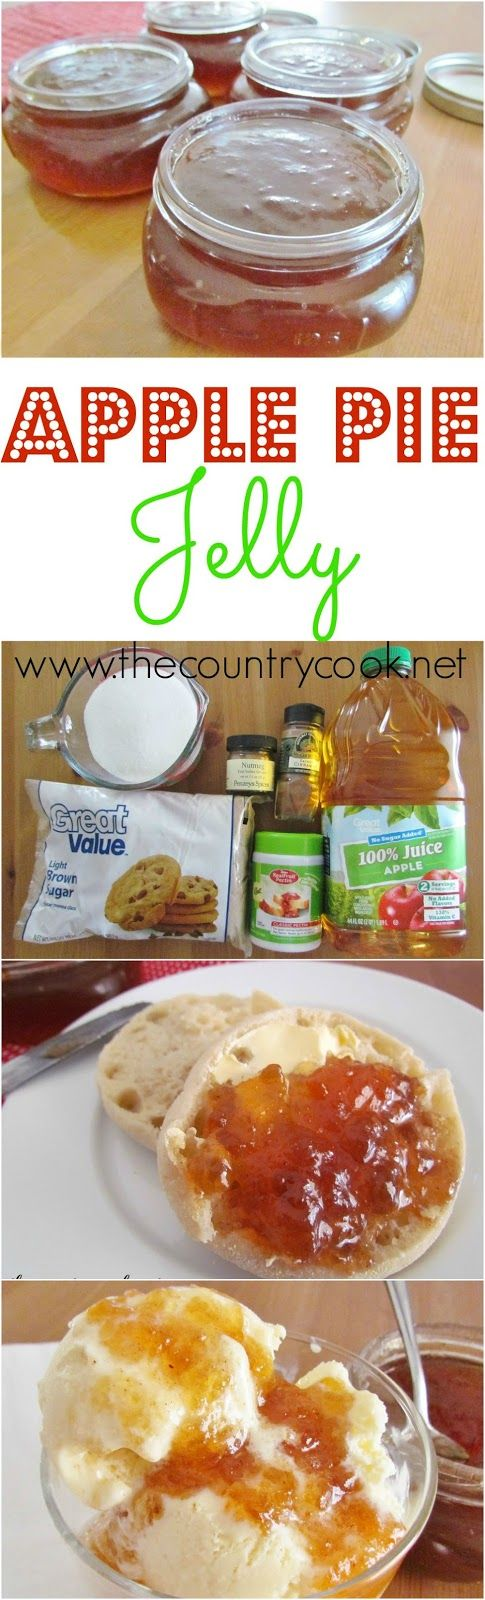 Apple Pie Jelly recipe from The Country Cook. Good on biscuits, toast, even on ice cream.